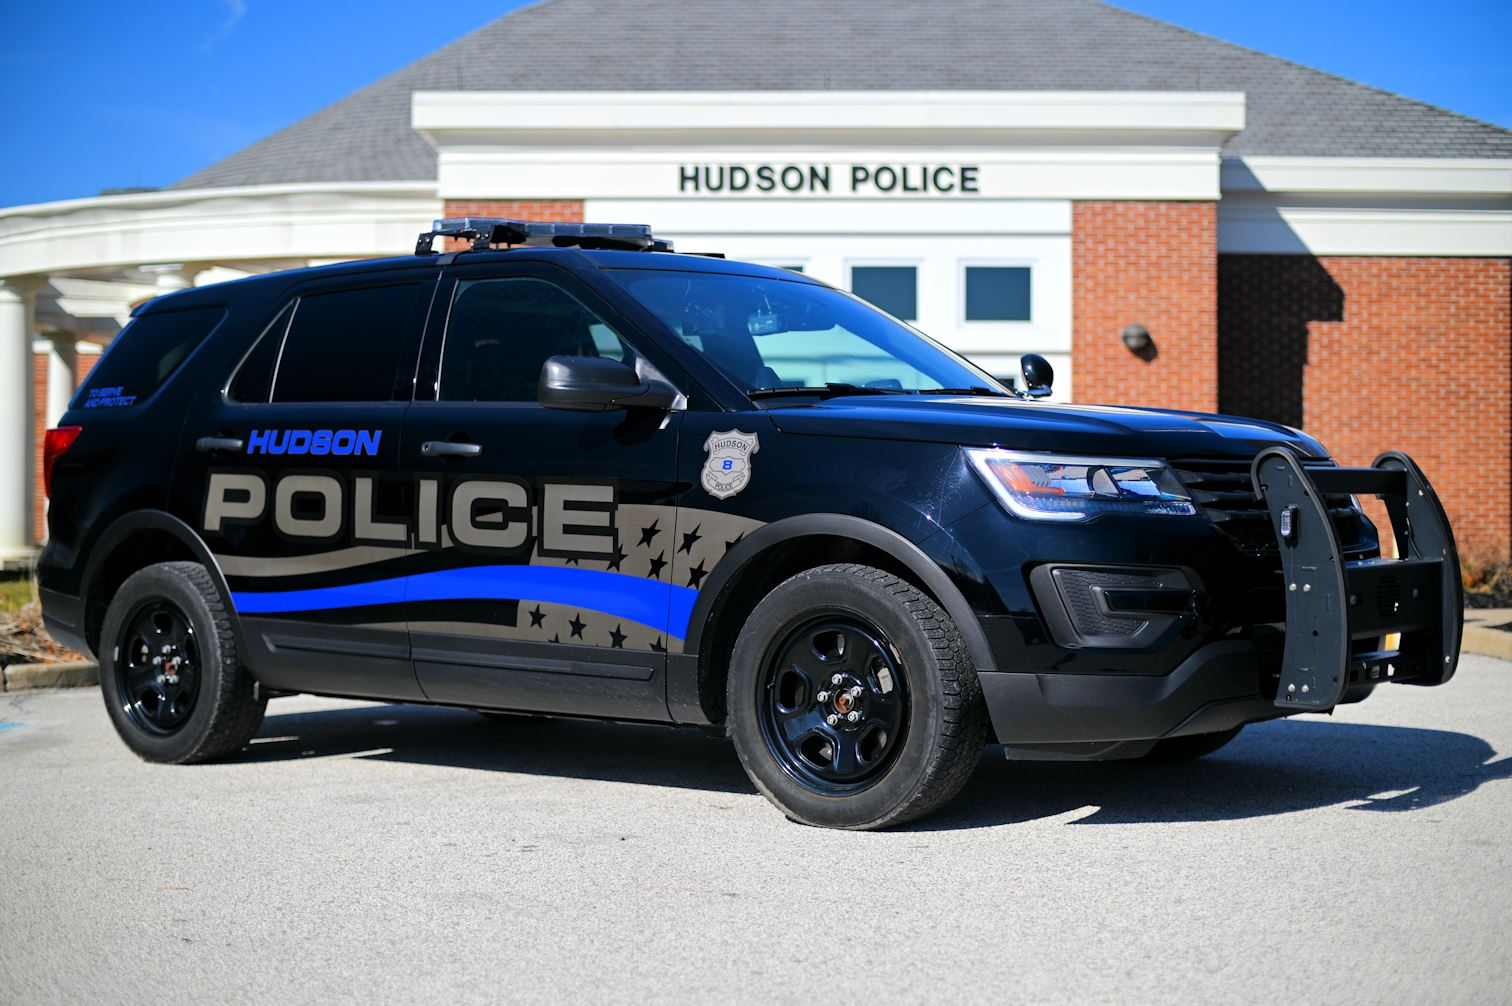 HPD New Cruiser